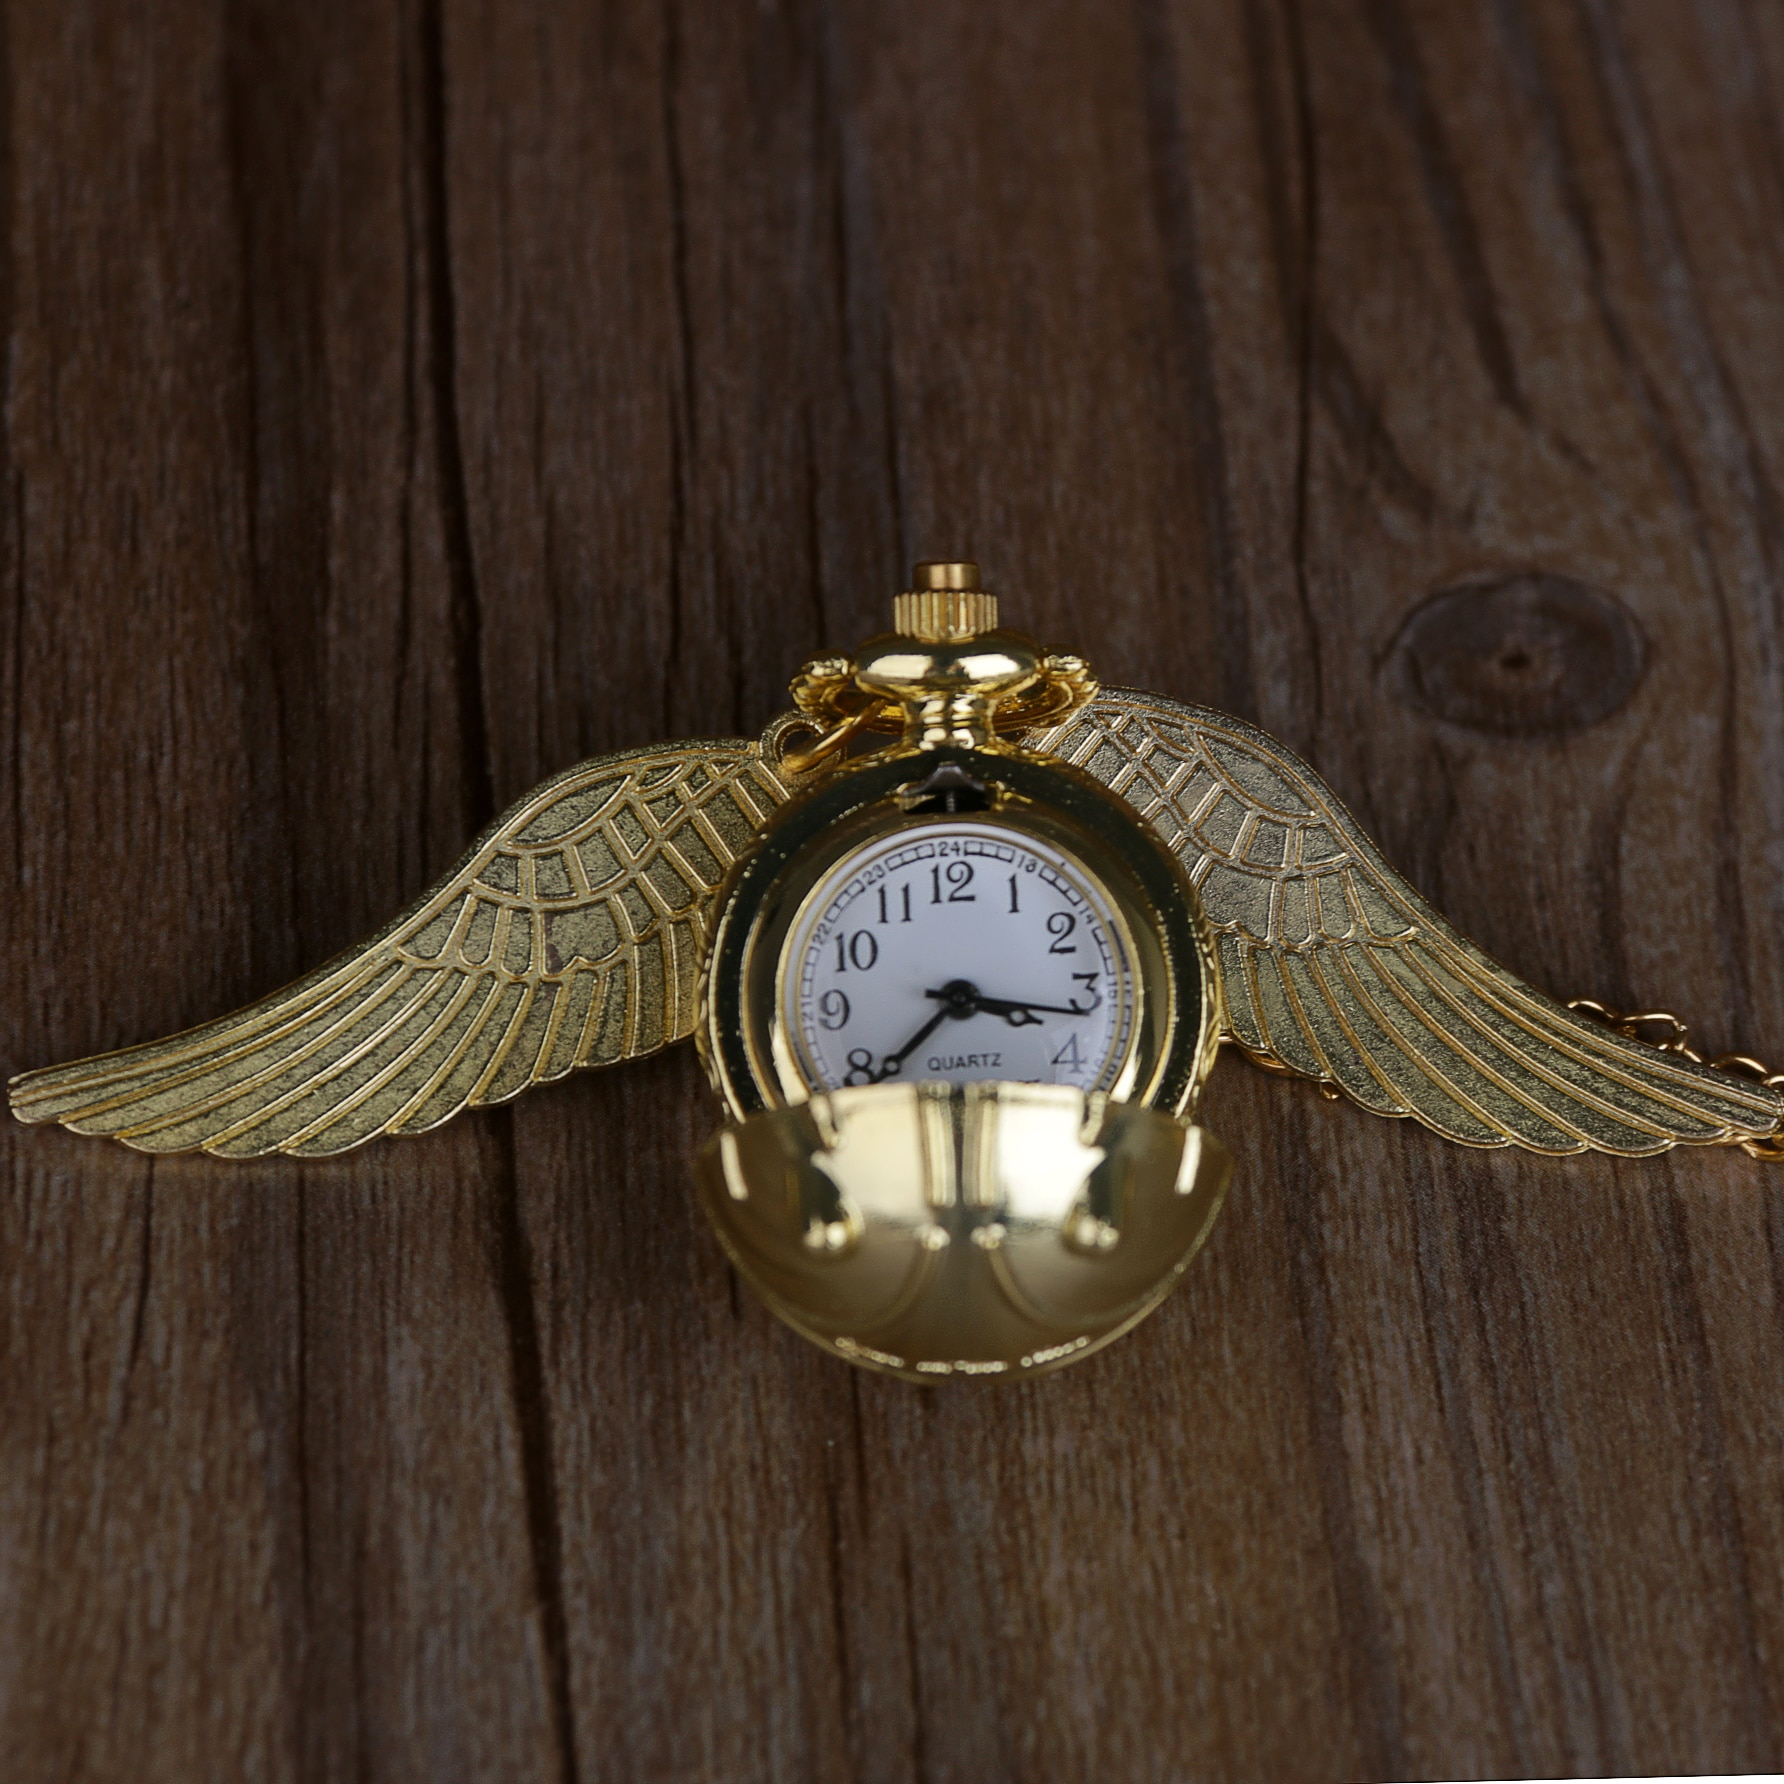 20pcs Golden Snitch Ball Shaped Quartz Pocket Watch Fashion Sweater Angel Wings Necklace Pendant Gifts for Men Women kids enlarge